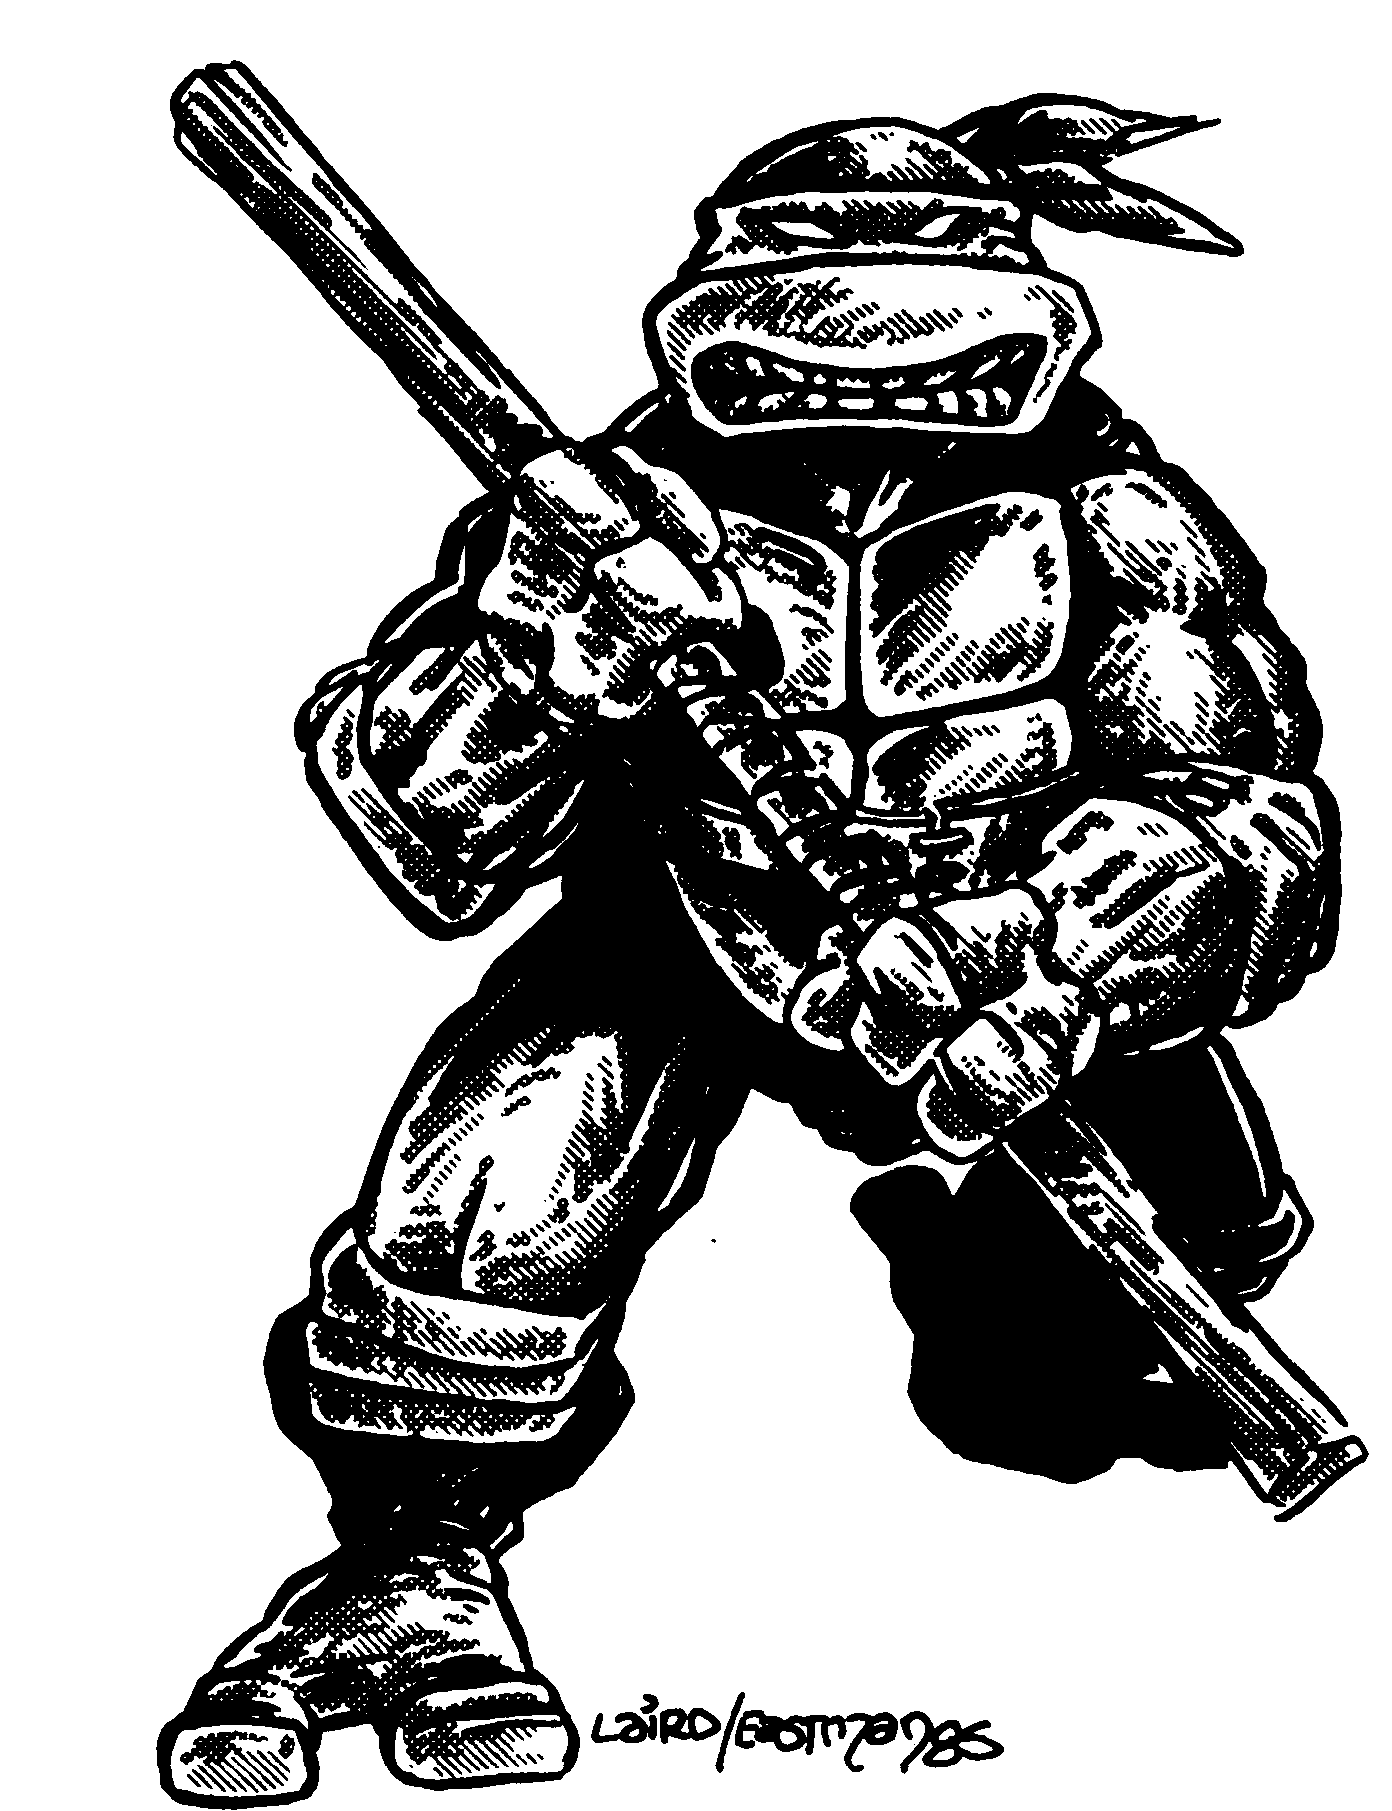 Donatello (Palladium)